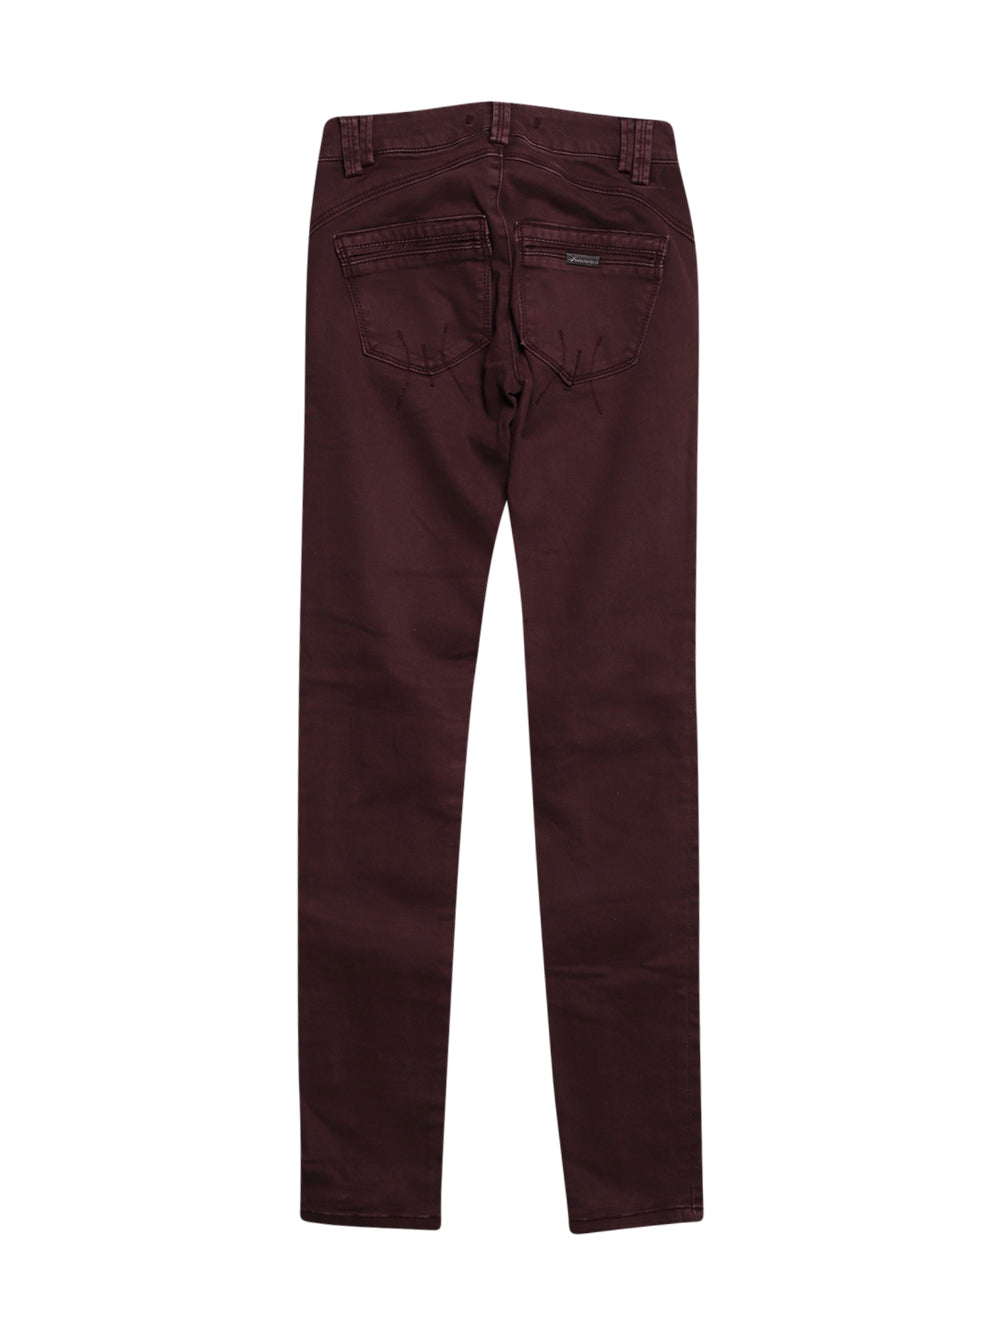 Back photo of Preloved Fornarina Bordeaux Woman's trousers - size 6/XS